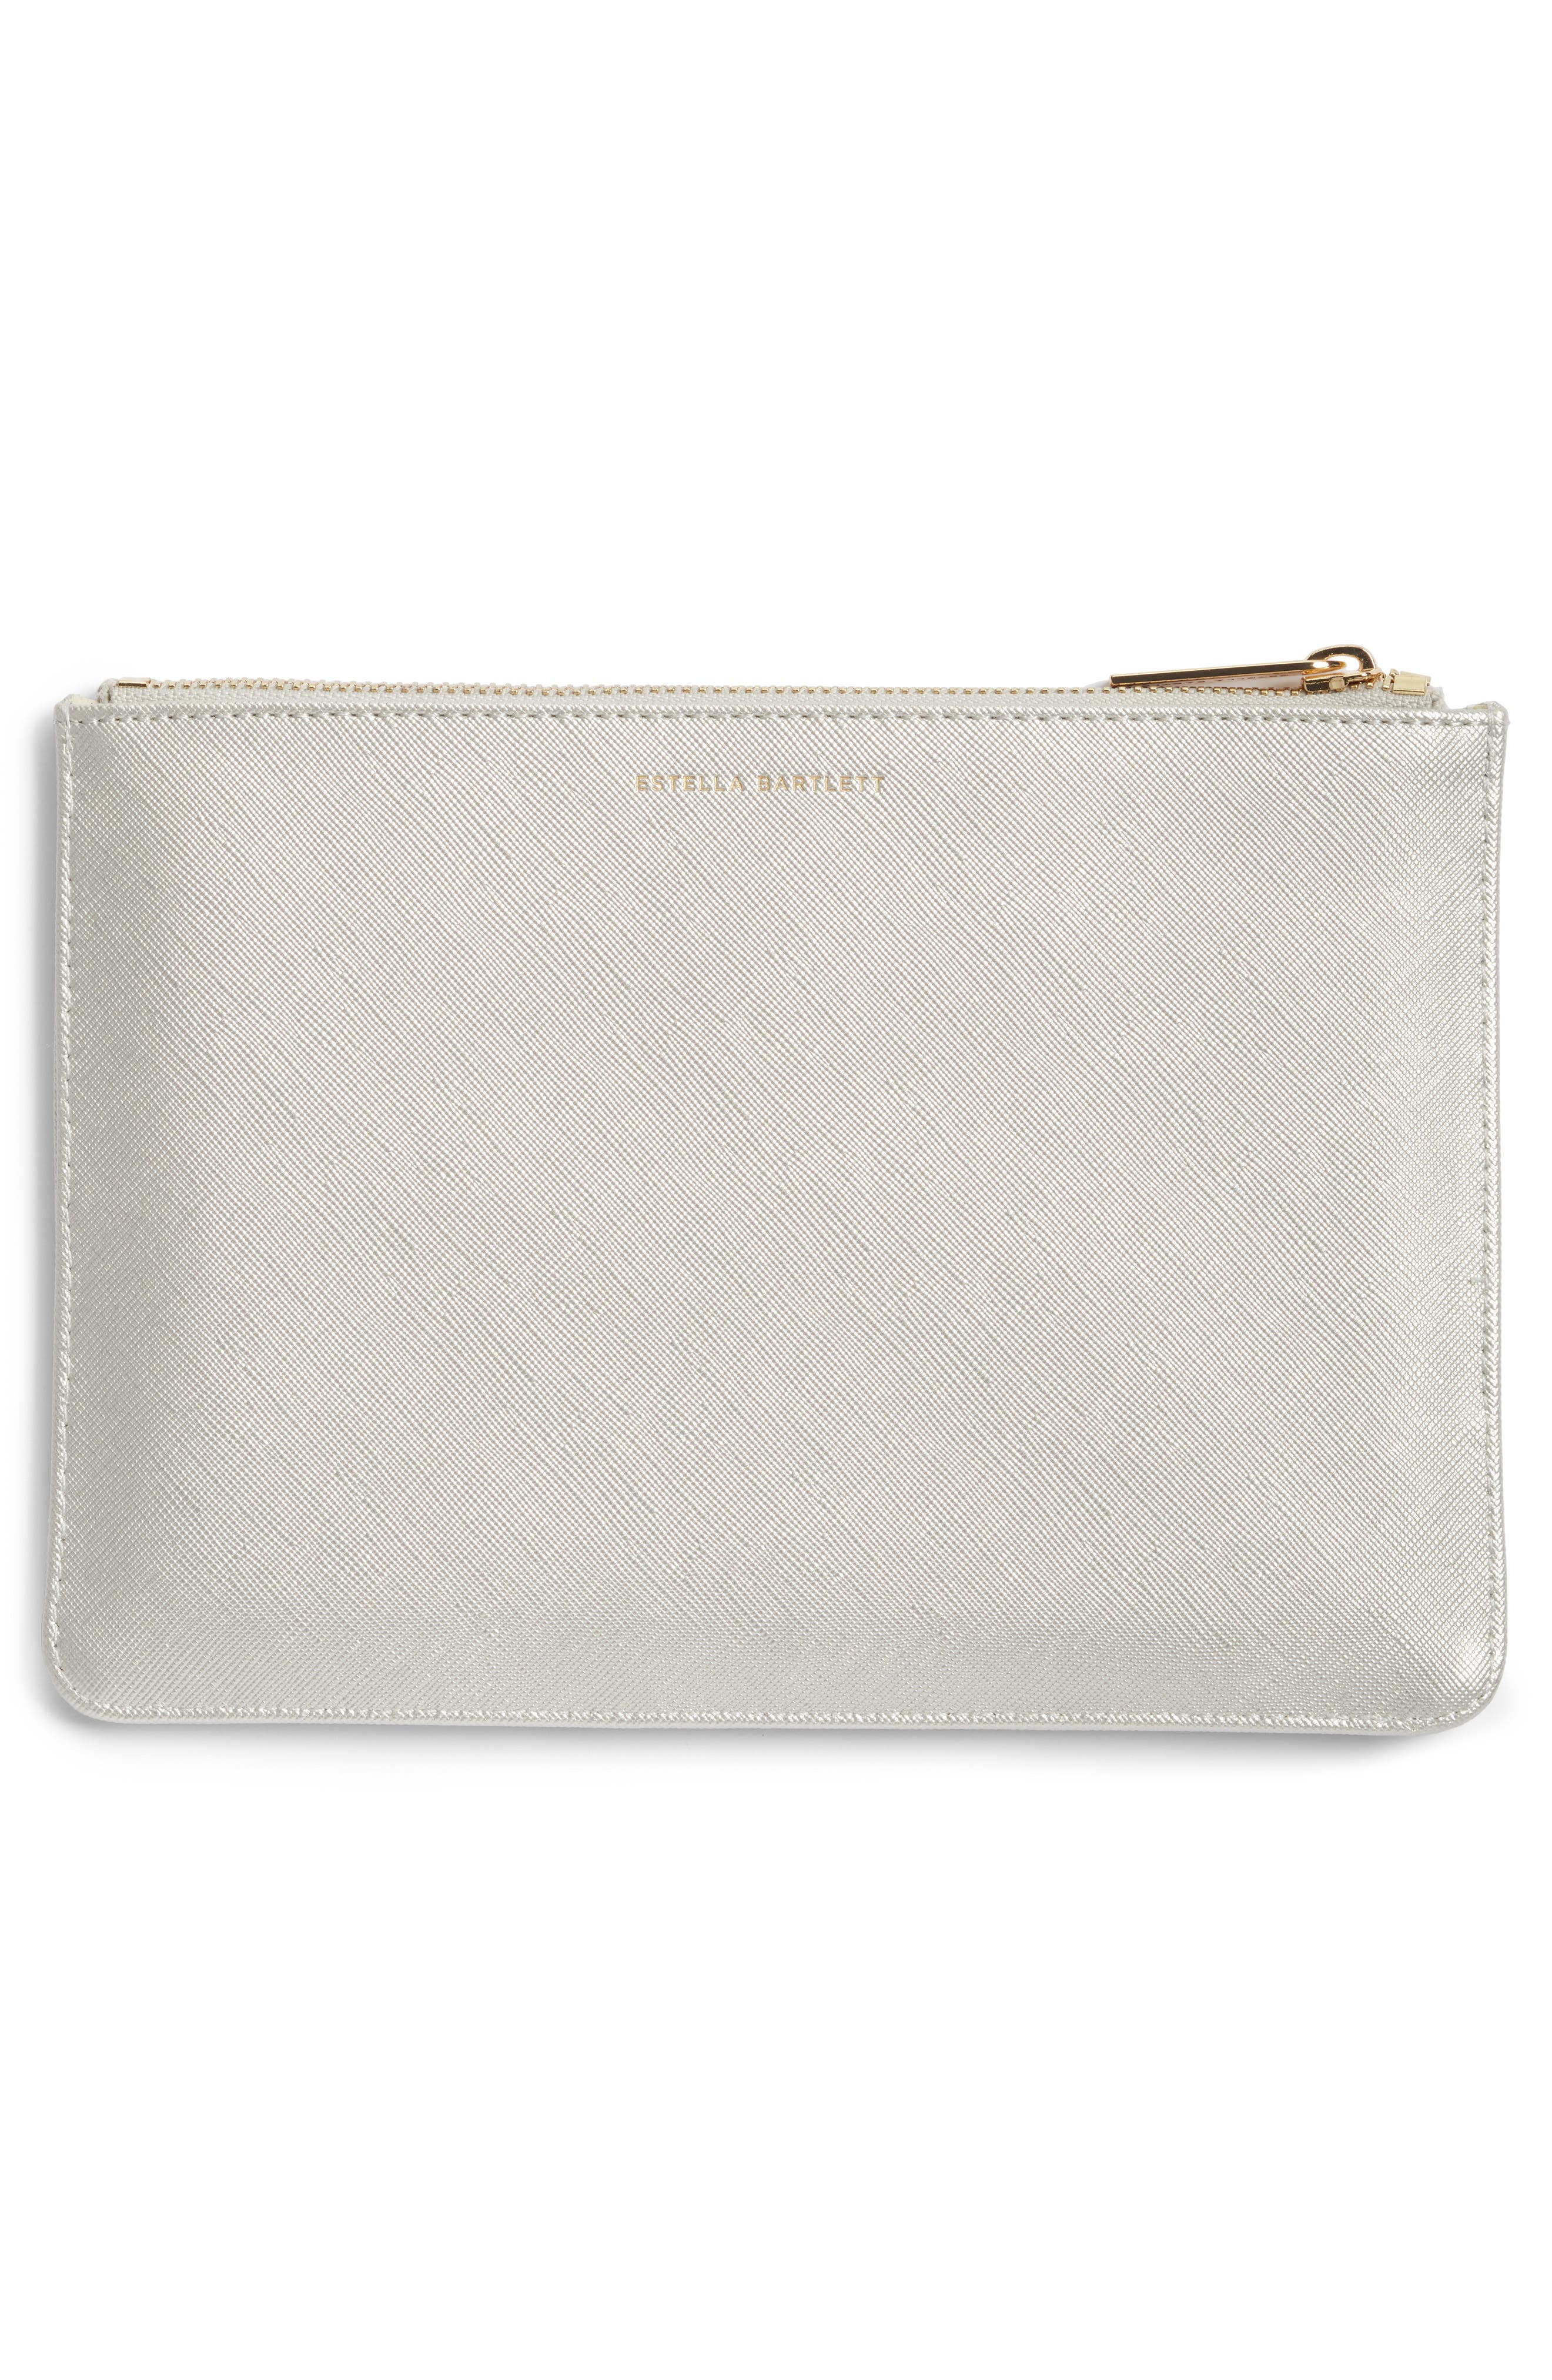 ESTELLA BARTLETT,                             Medium Zip Pouch,                             Alternate thumbnail 3, color,                             SILVER - BELIEVE